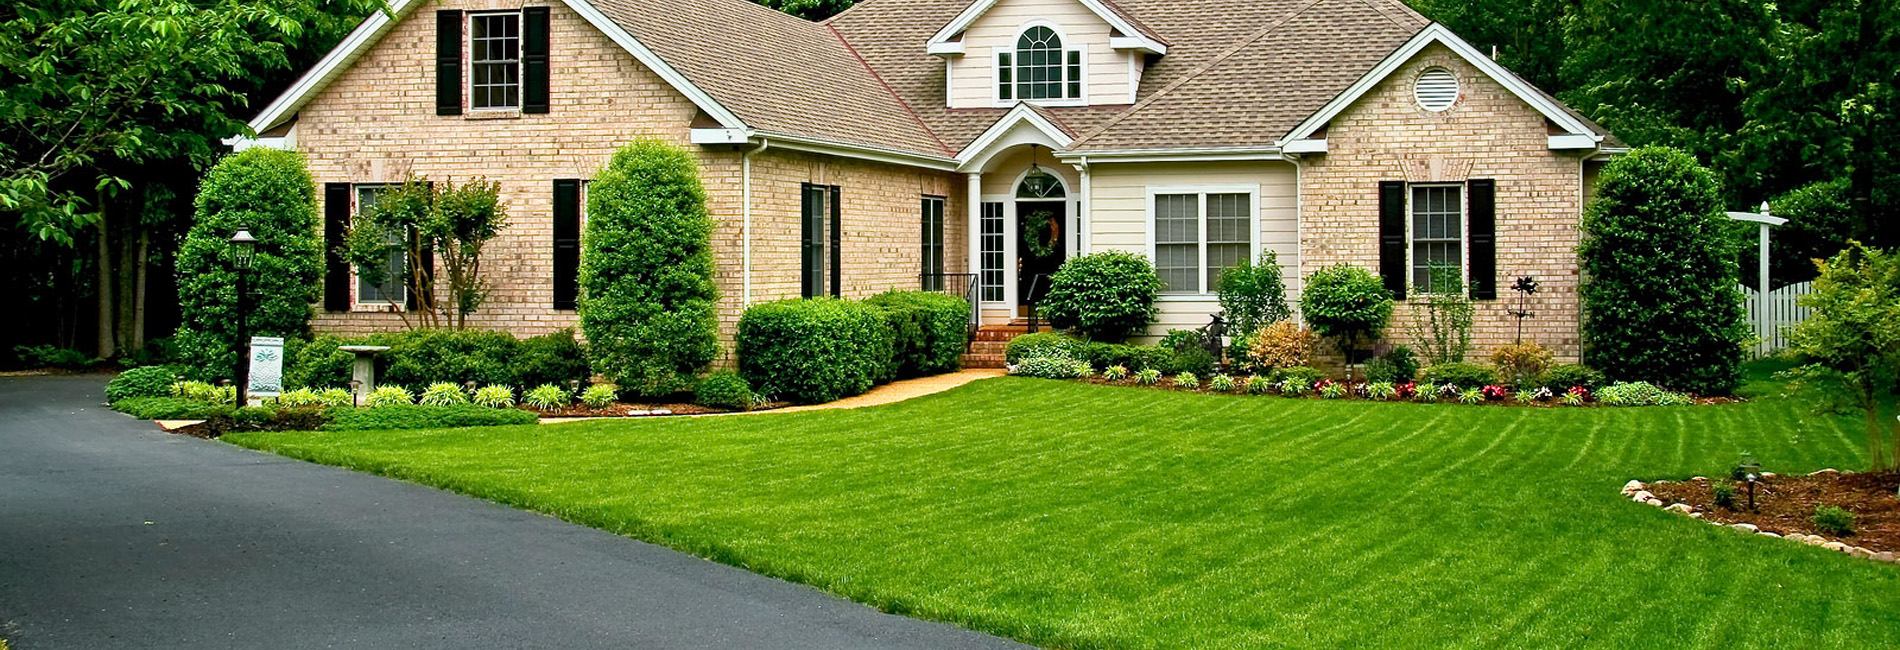 Complete Lawn Care SpecialistsRestoration & Maintenance Services